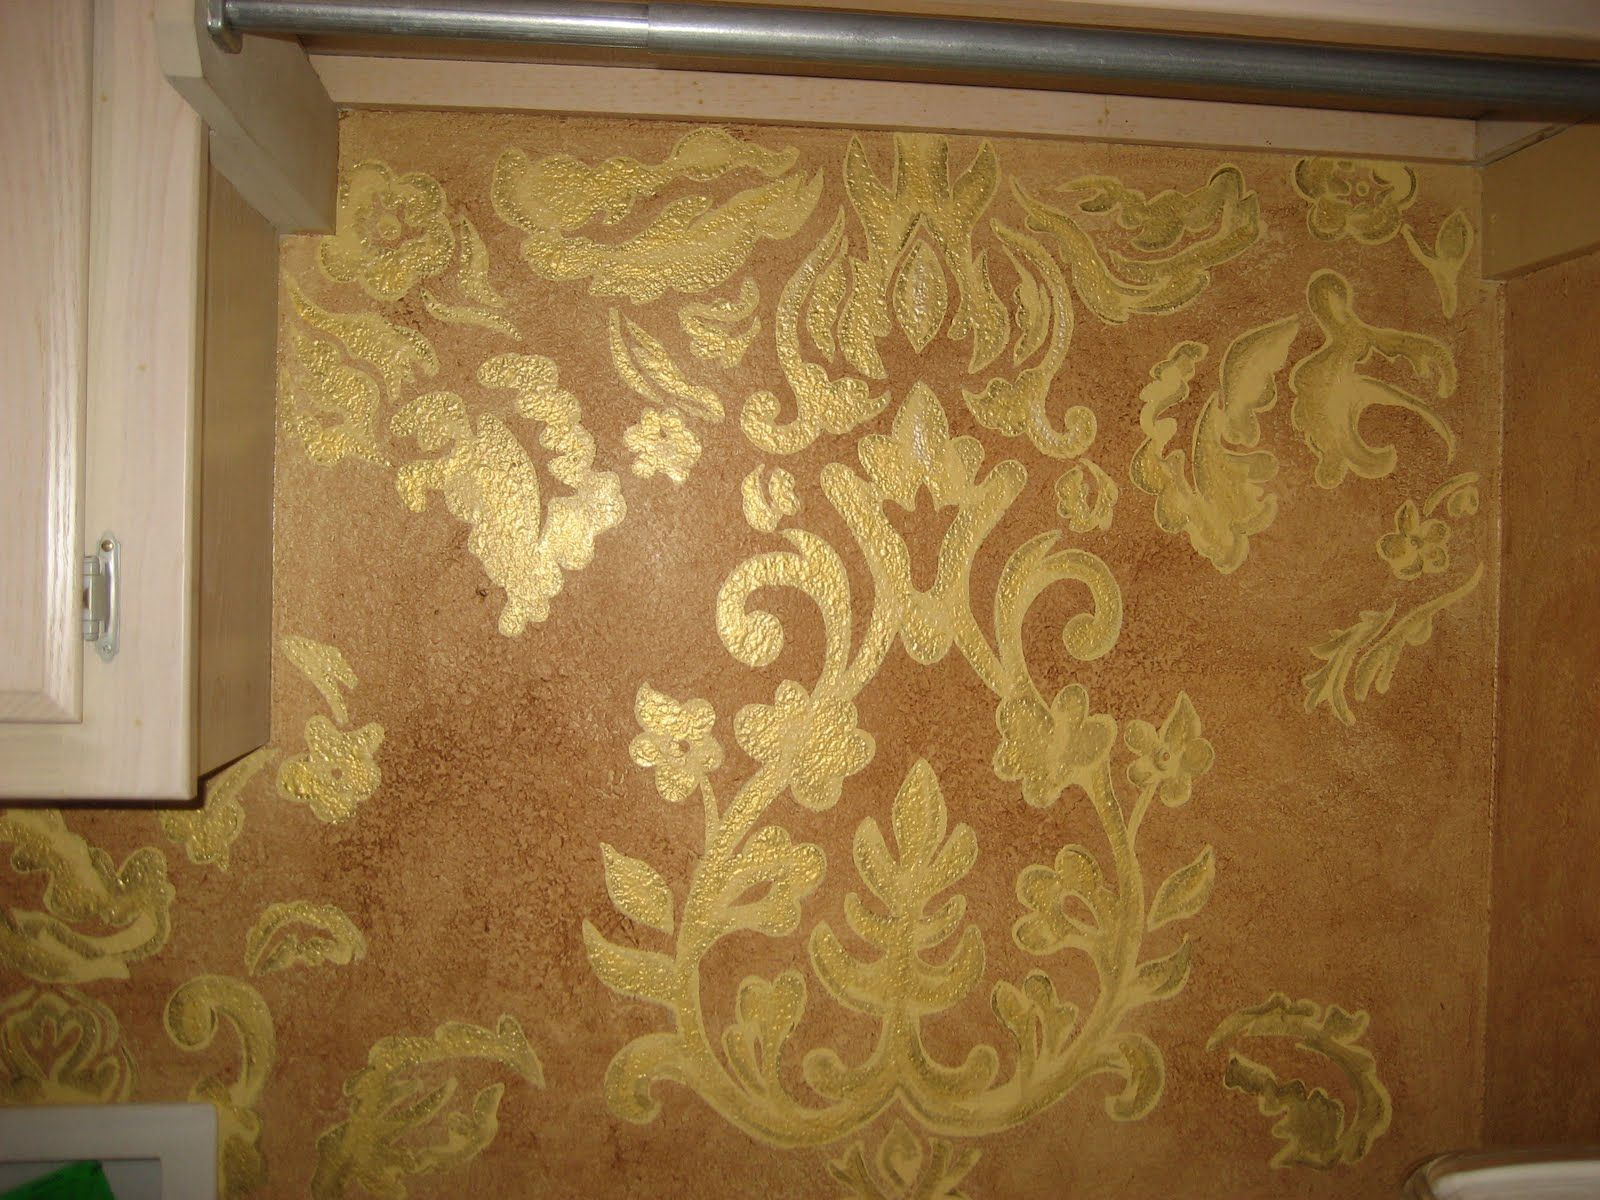 Damask stenciled wall | If walls could talk | Pinterest | Damask ...